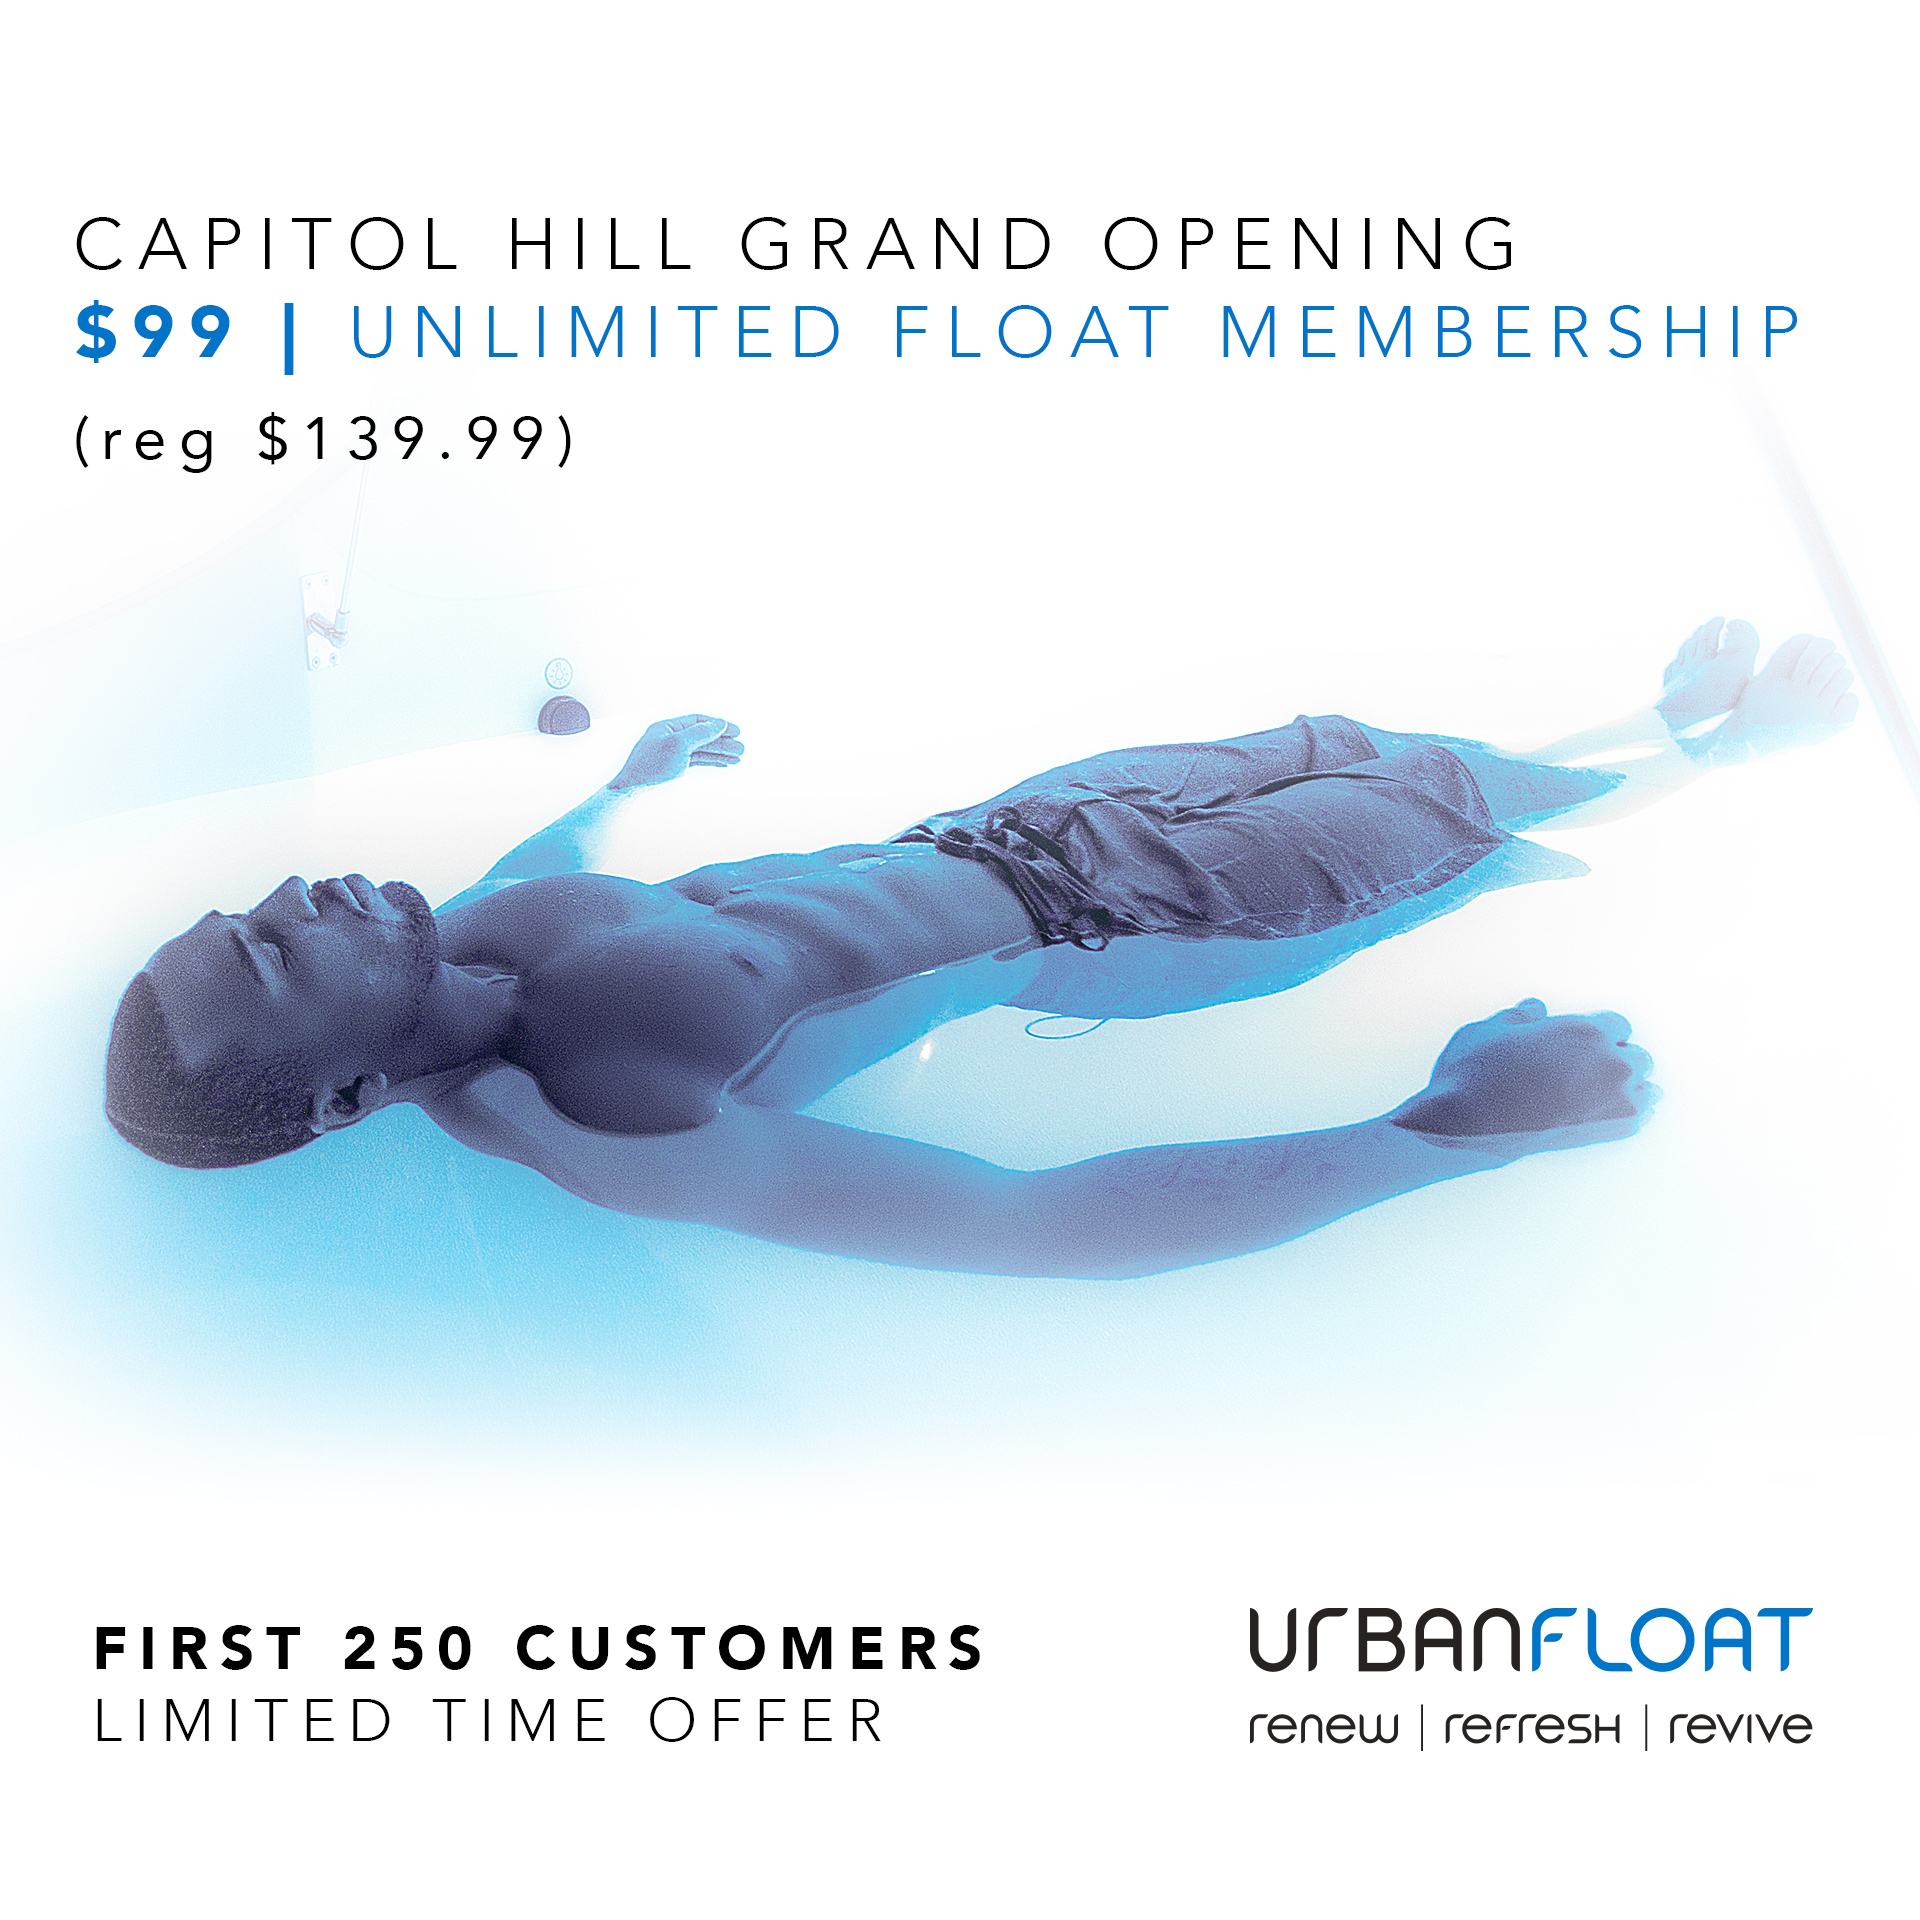 Capitol Hill Grand Opening Unlimited Floating Membership